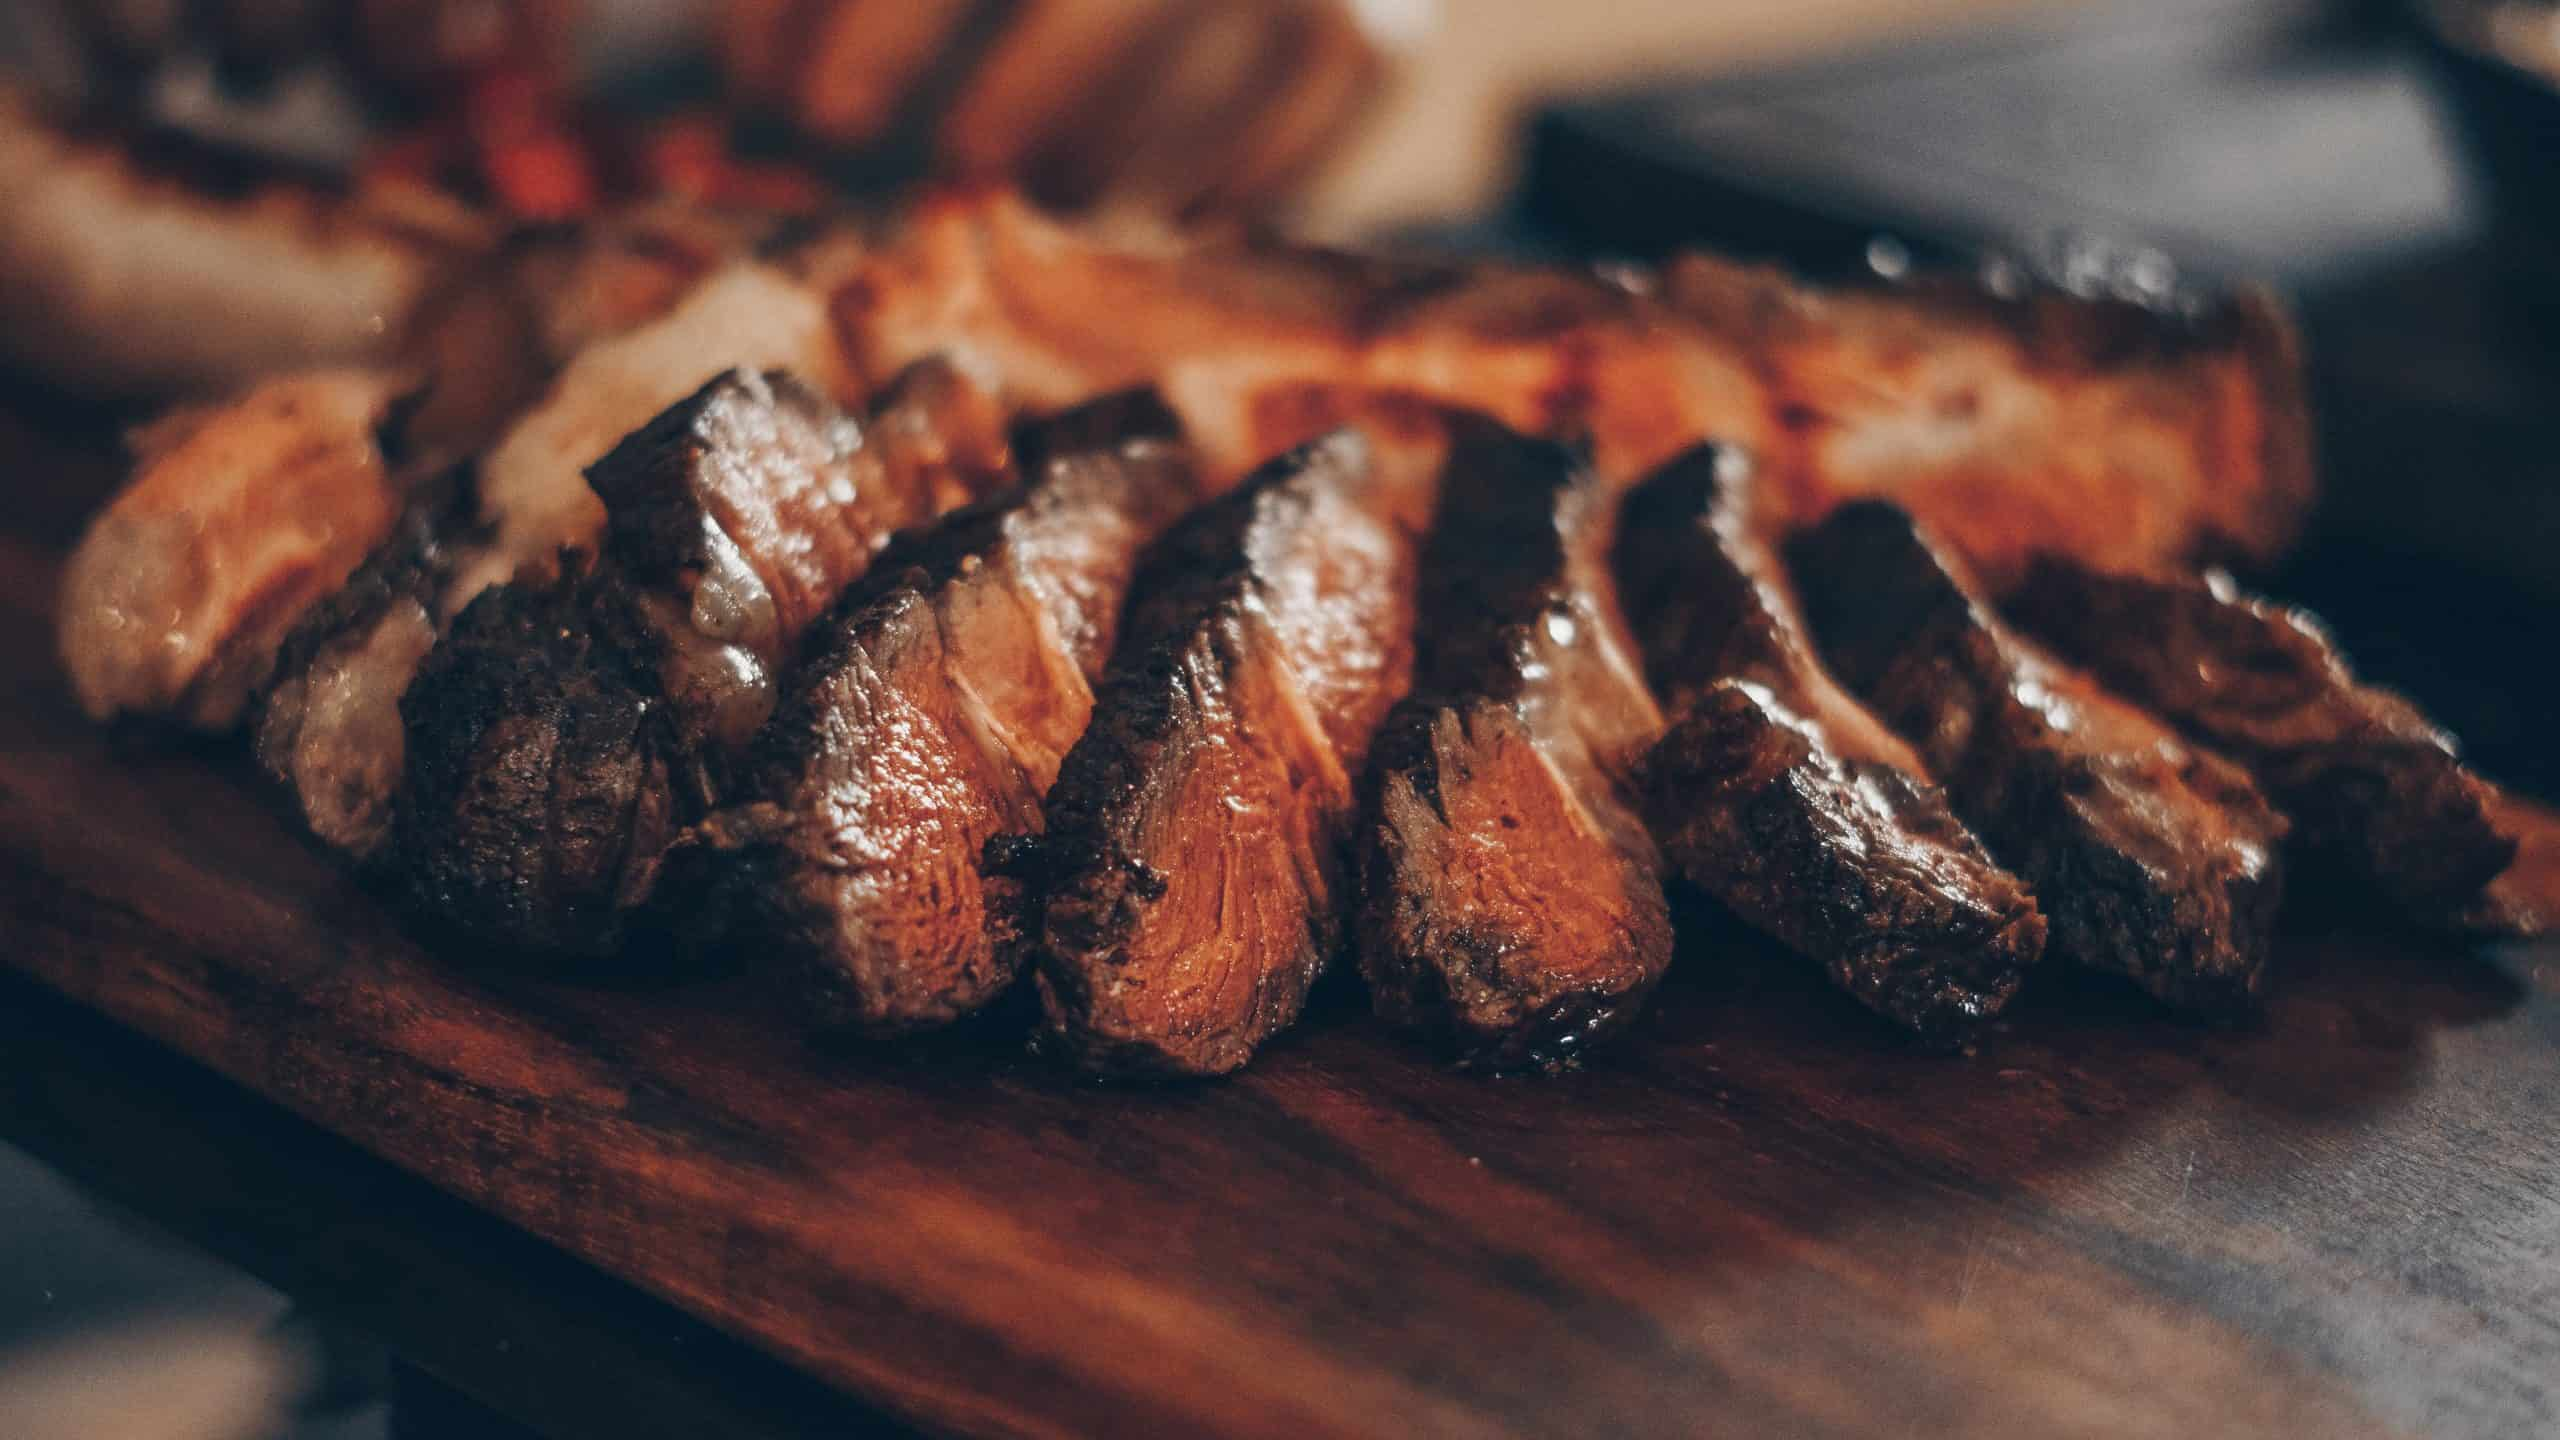 Meat as protein source